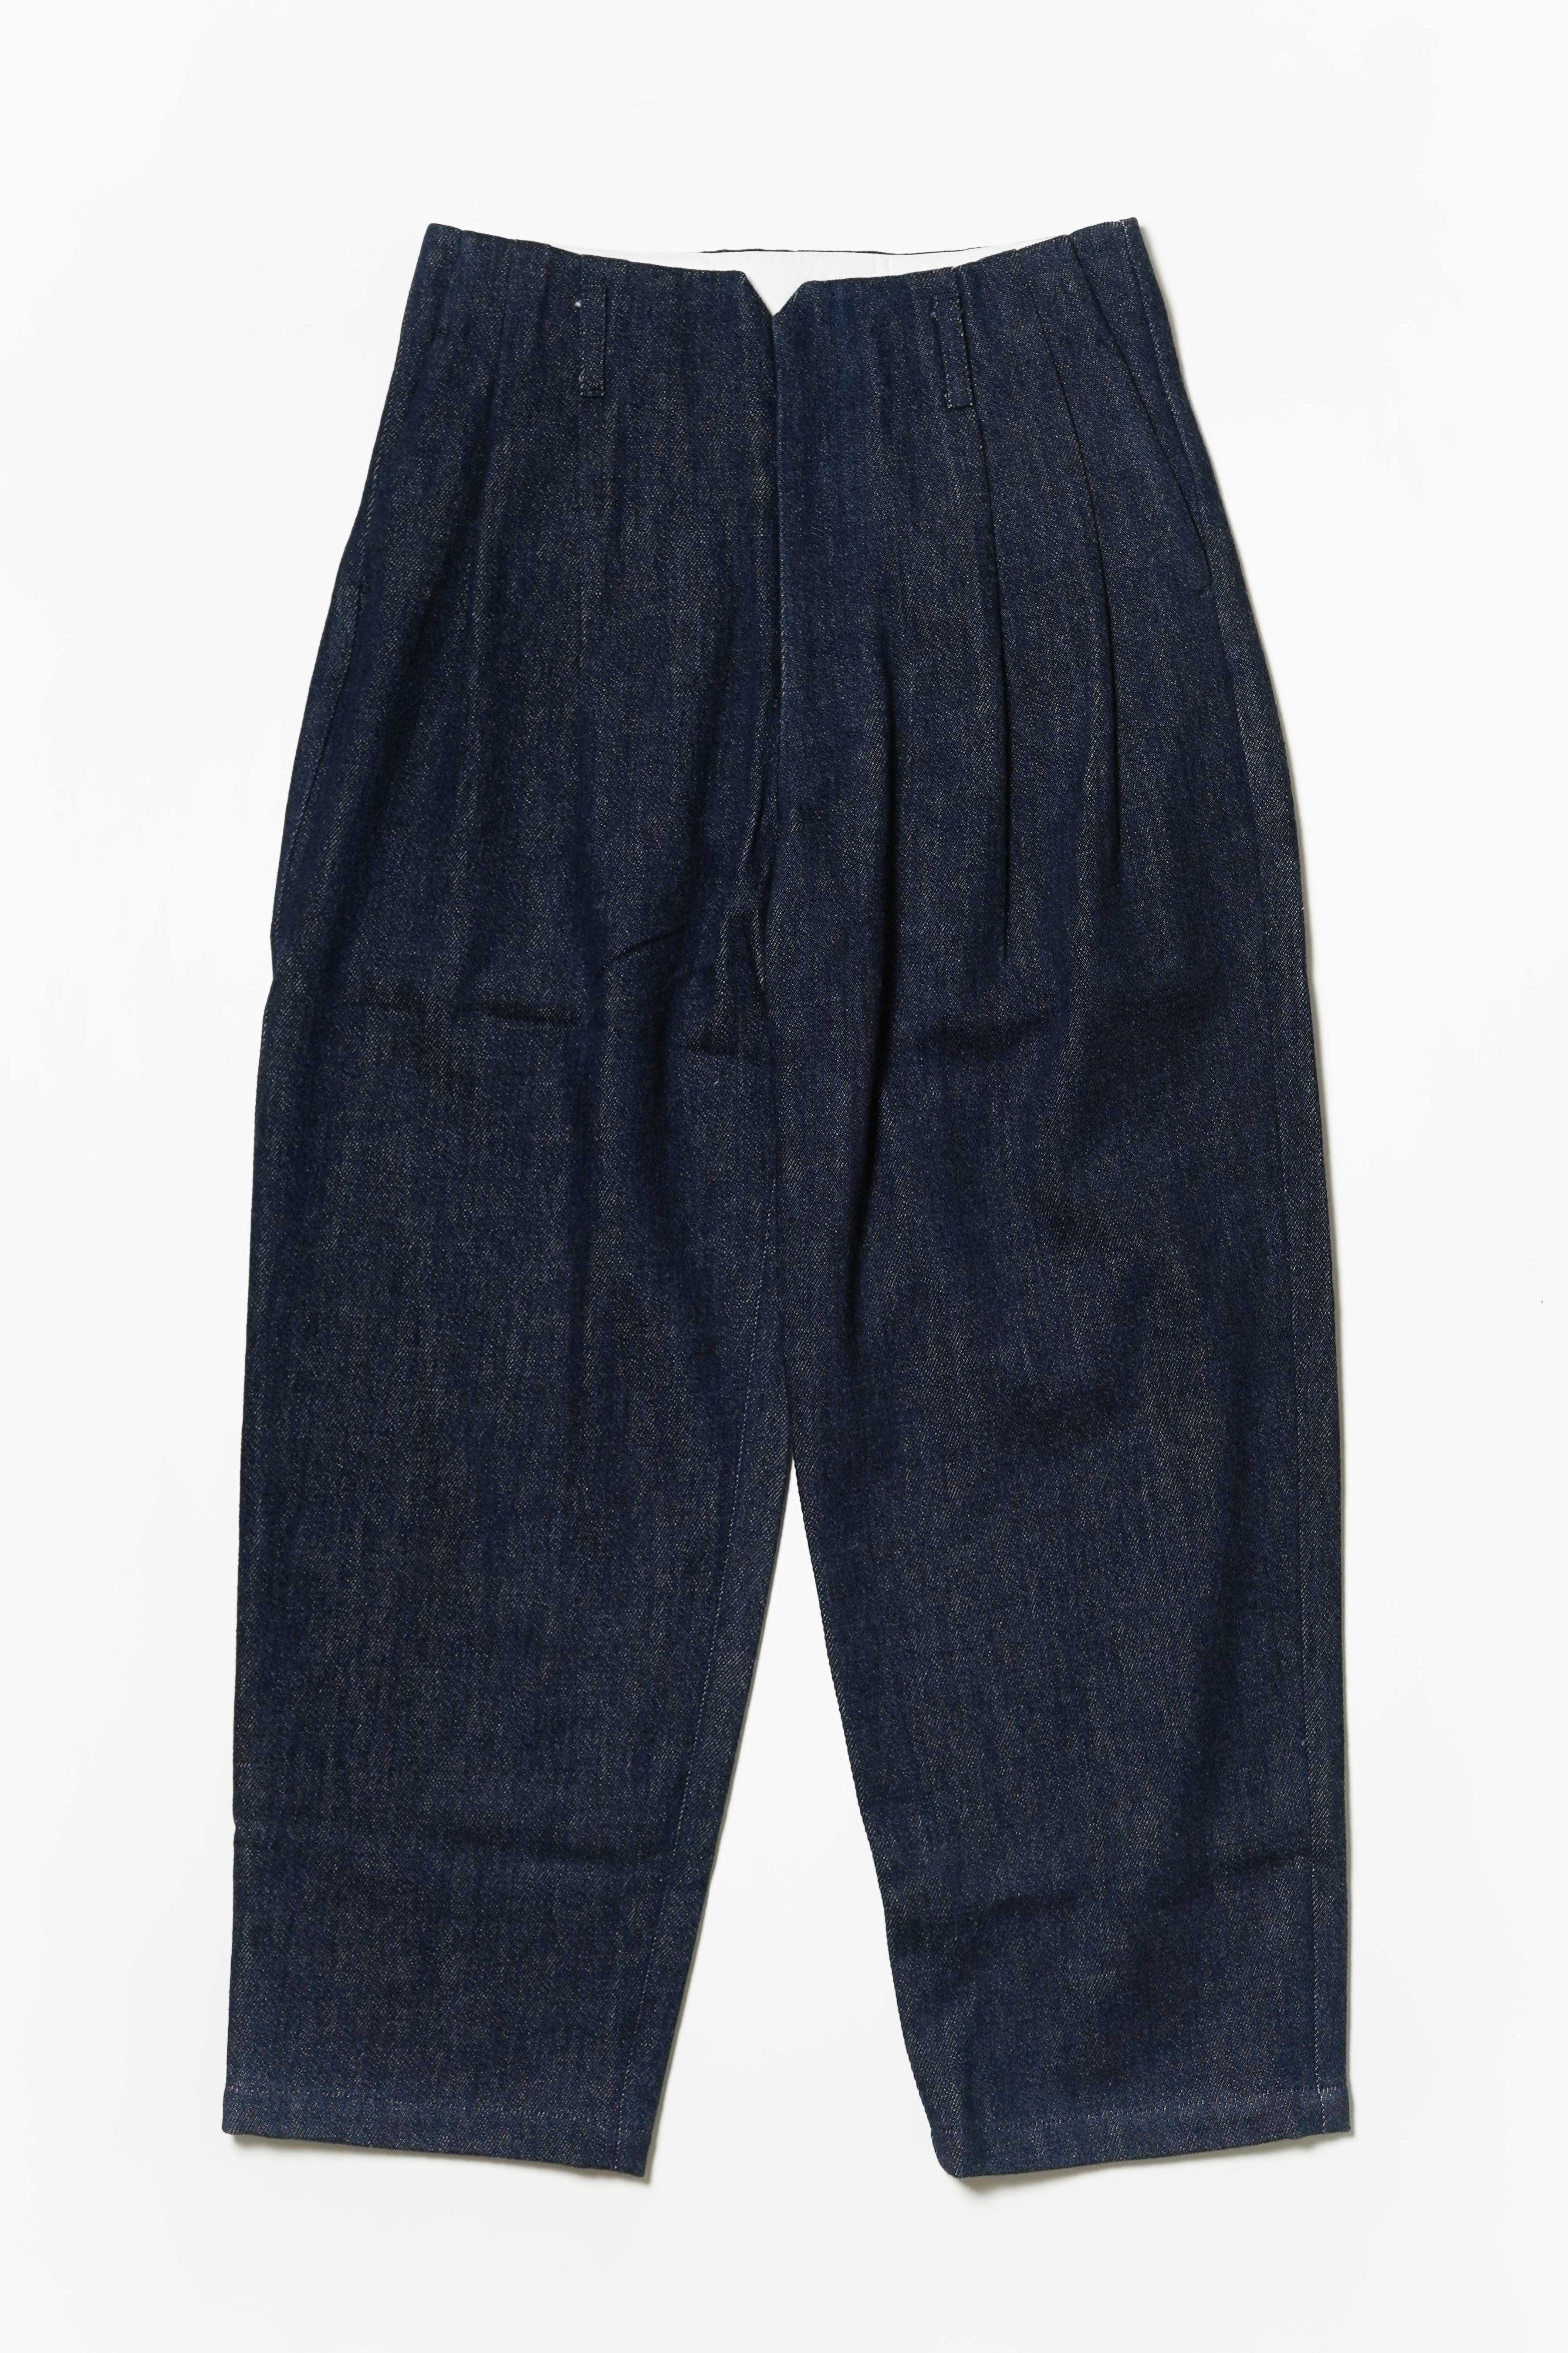 2 TUCK COTTON SLACKS - MOUKOHAN